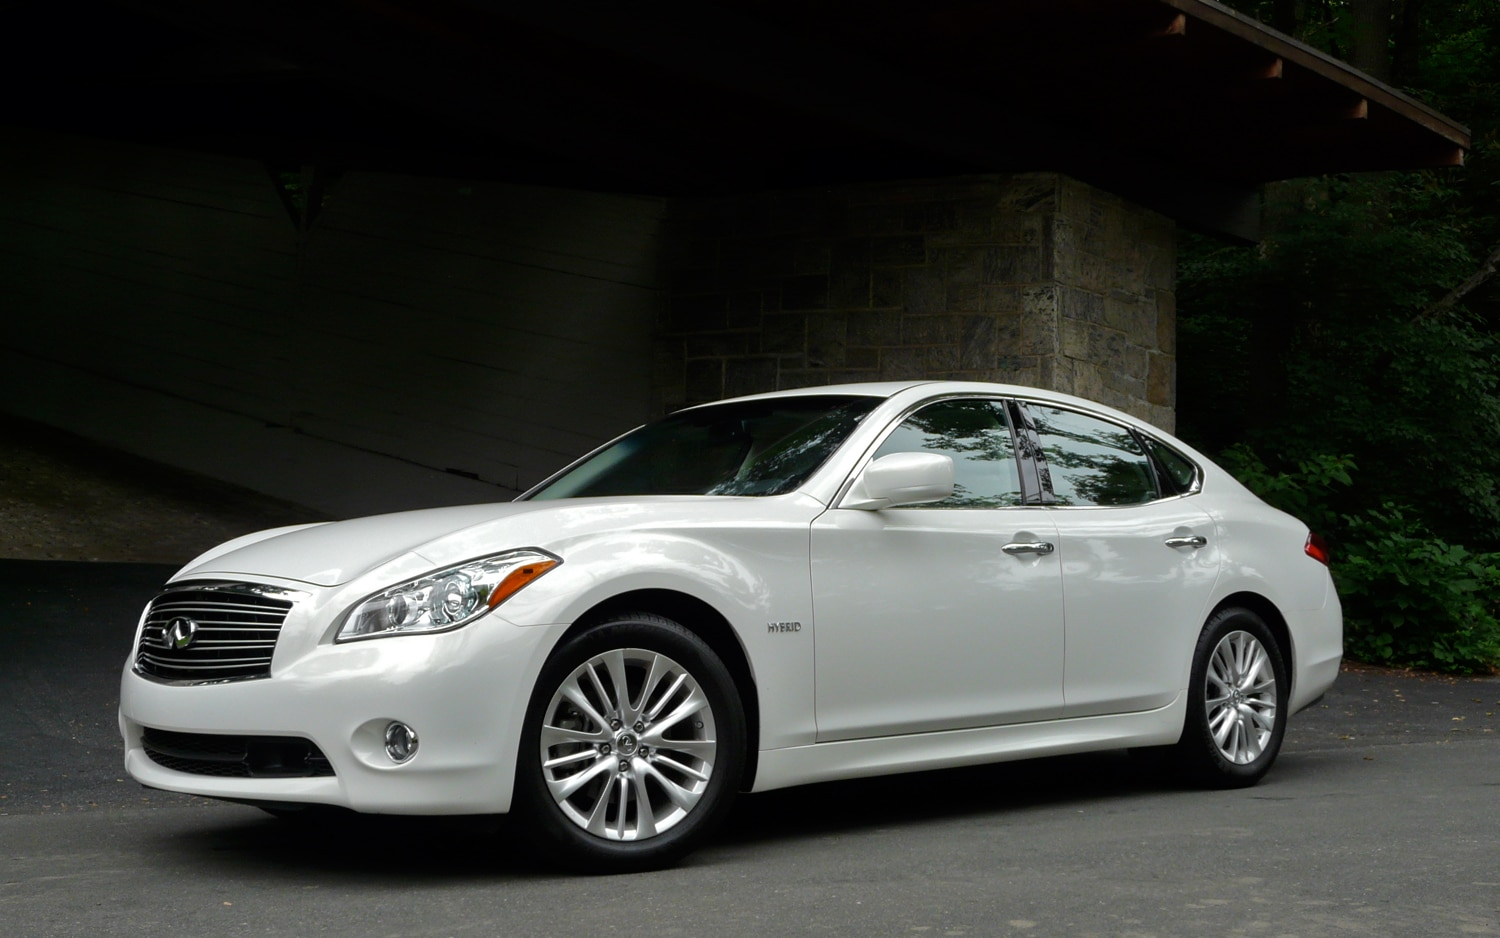 2012 Infiniti M Hybrid Front Left View2